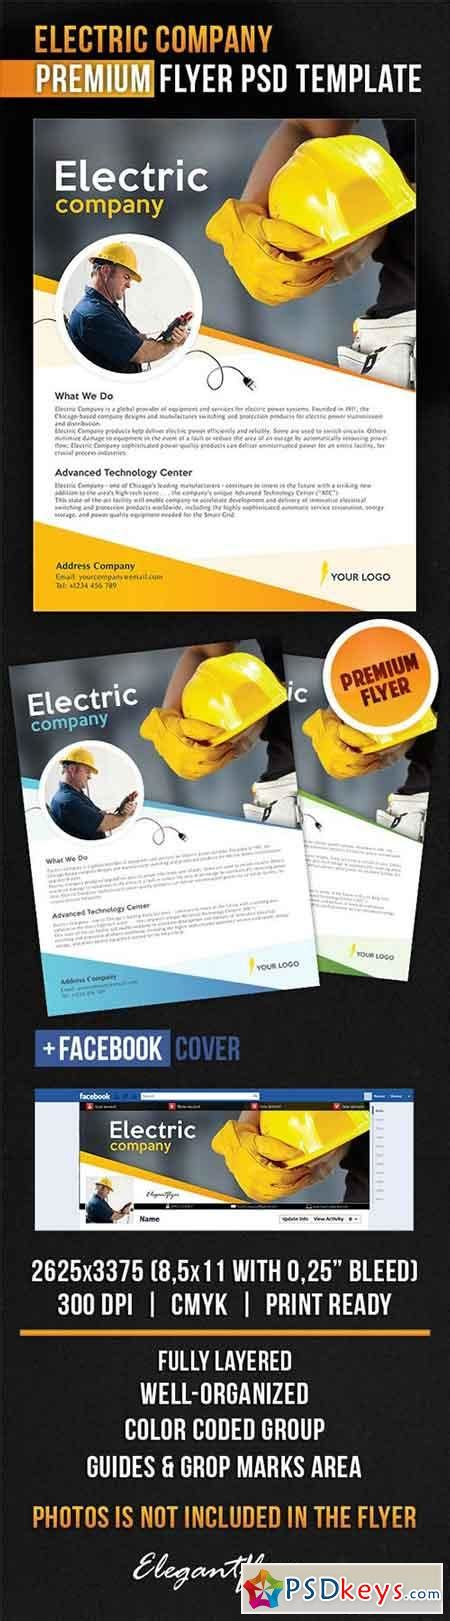 electric company flyer psd template facebook cover